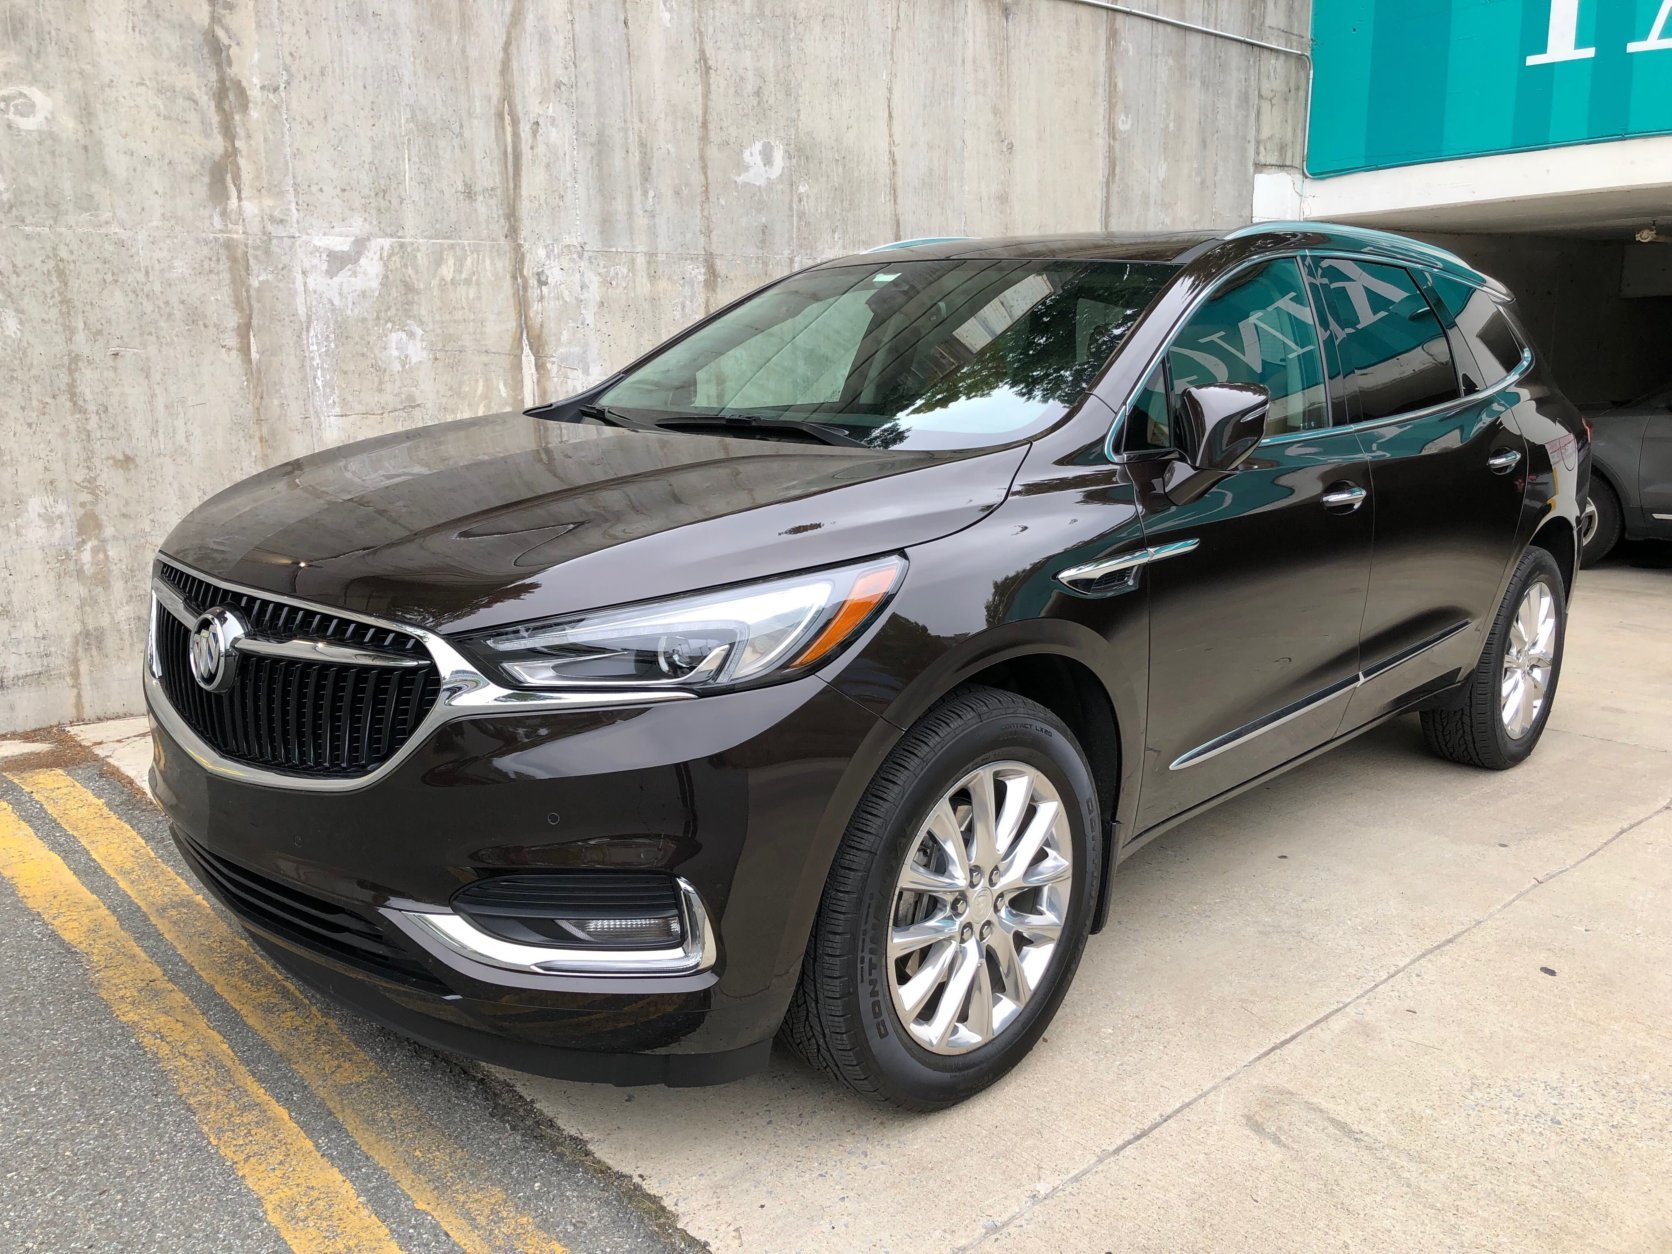 <h2><strong>Buick Enclave Premium</strong></h2> <p><strong>Price as driven: </strong>$55,735</p> <p>The redesigned Buick Enclave is big step up from the first generation model that was around for a decade. Space is the three-row Enclave's biggest asset; the cabin is huge.</p>